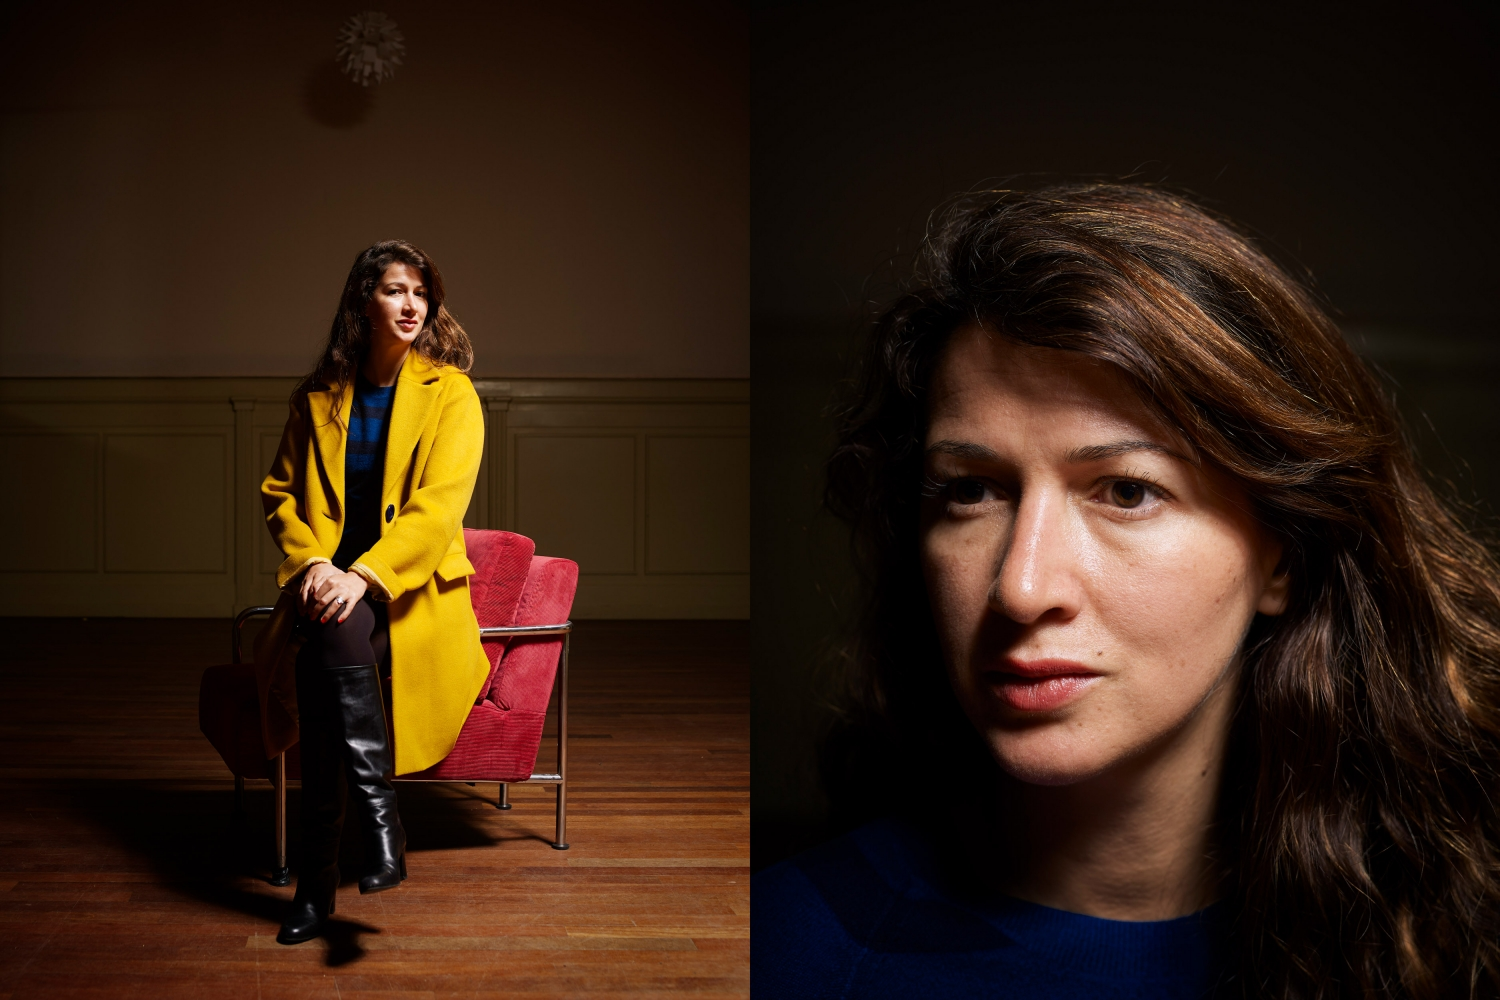 Nederland, Amsterdam, 07-02-2018 Zineb El Rhazoui, Moroccan-born French journalist. She is a columnist for Paris-based satirical magazine Charlie Hebdo PHOTO AND COPYRIGHT ROGER CREMERS